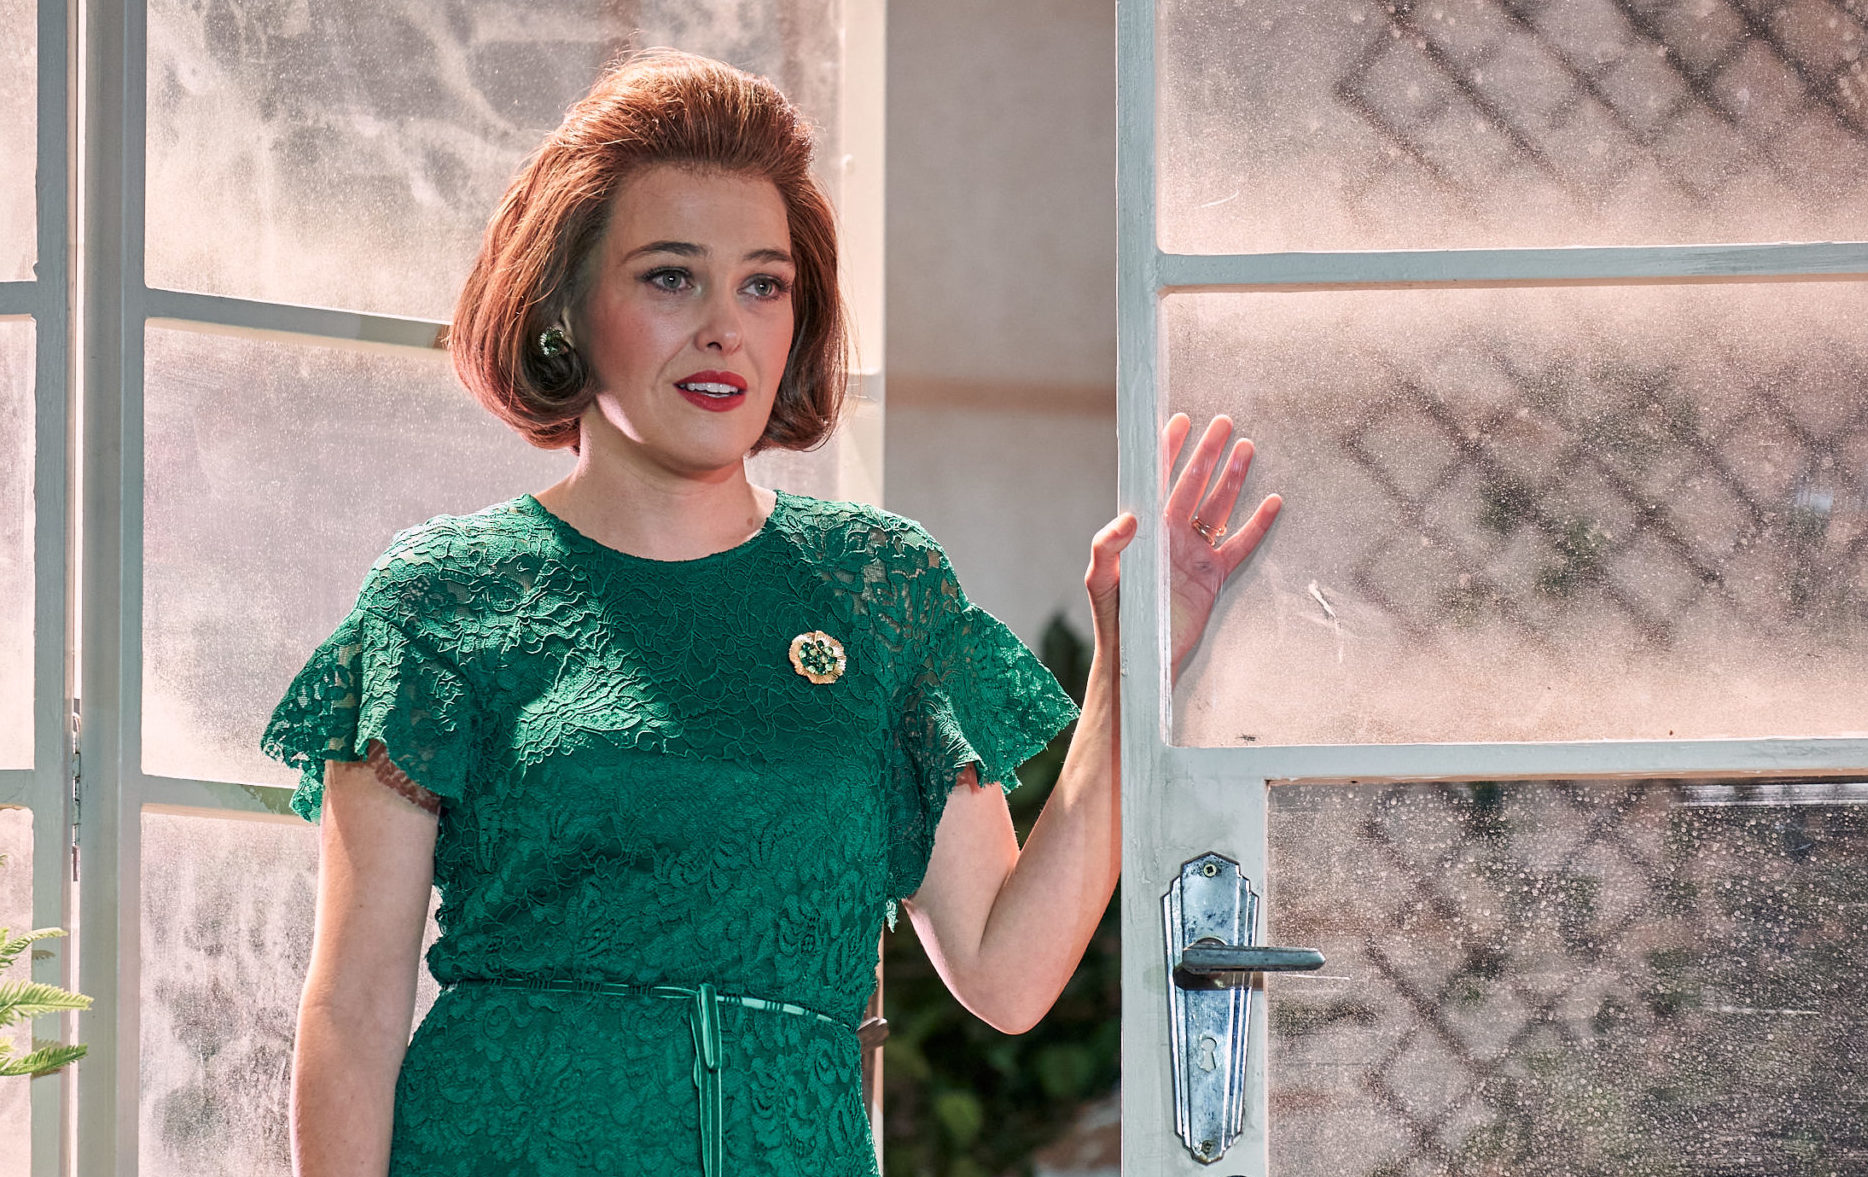 Not Going Out star Sally Bretton plays Margot in the play Dial M For Murder